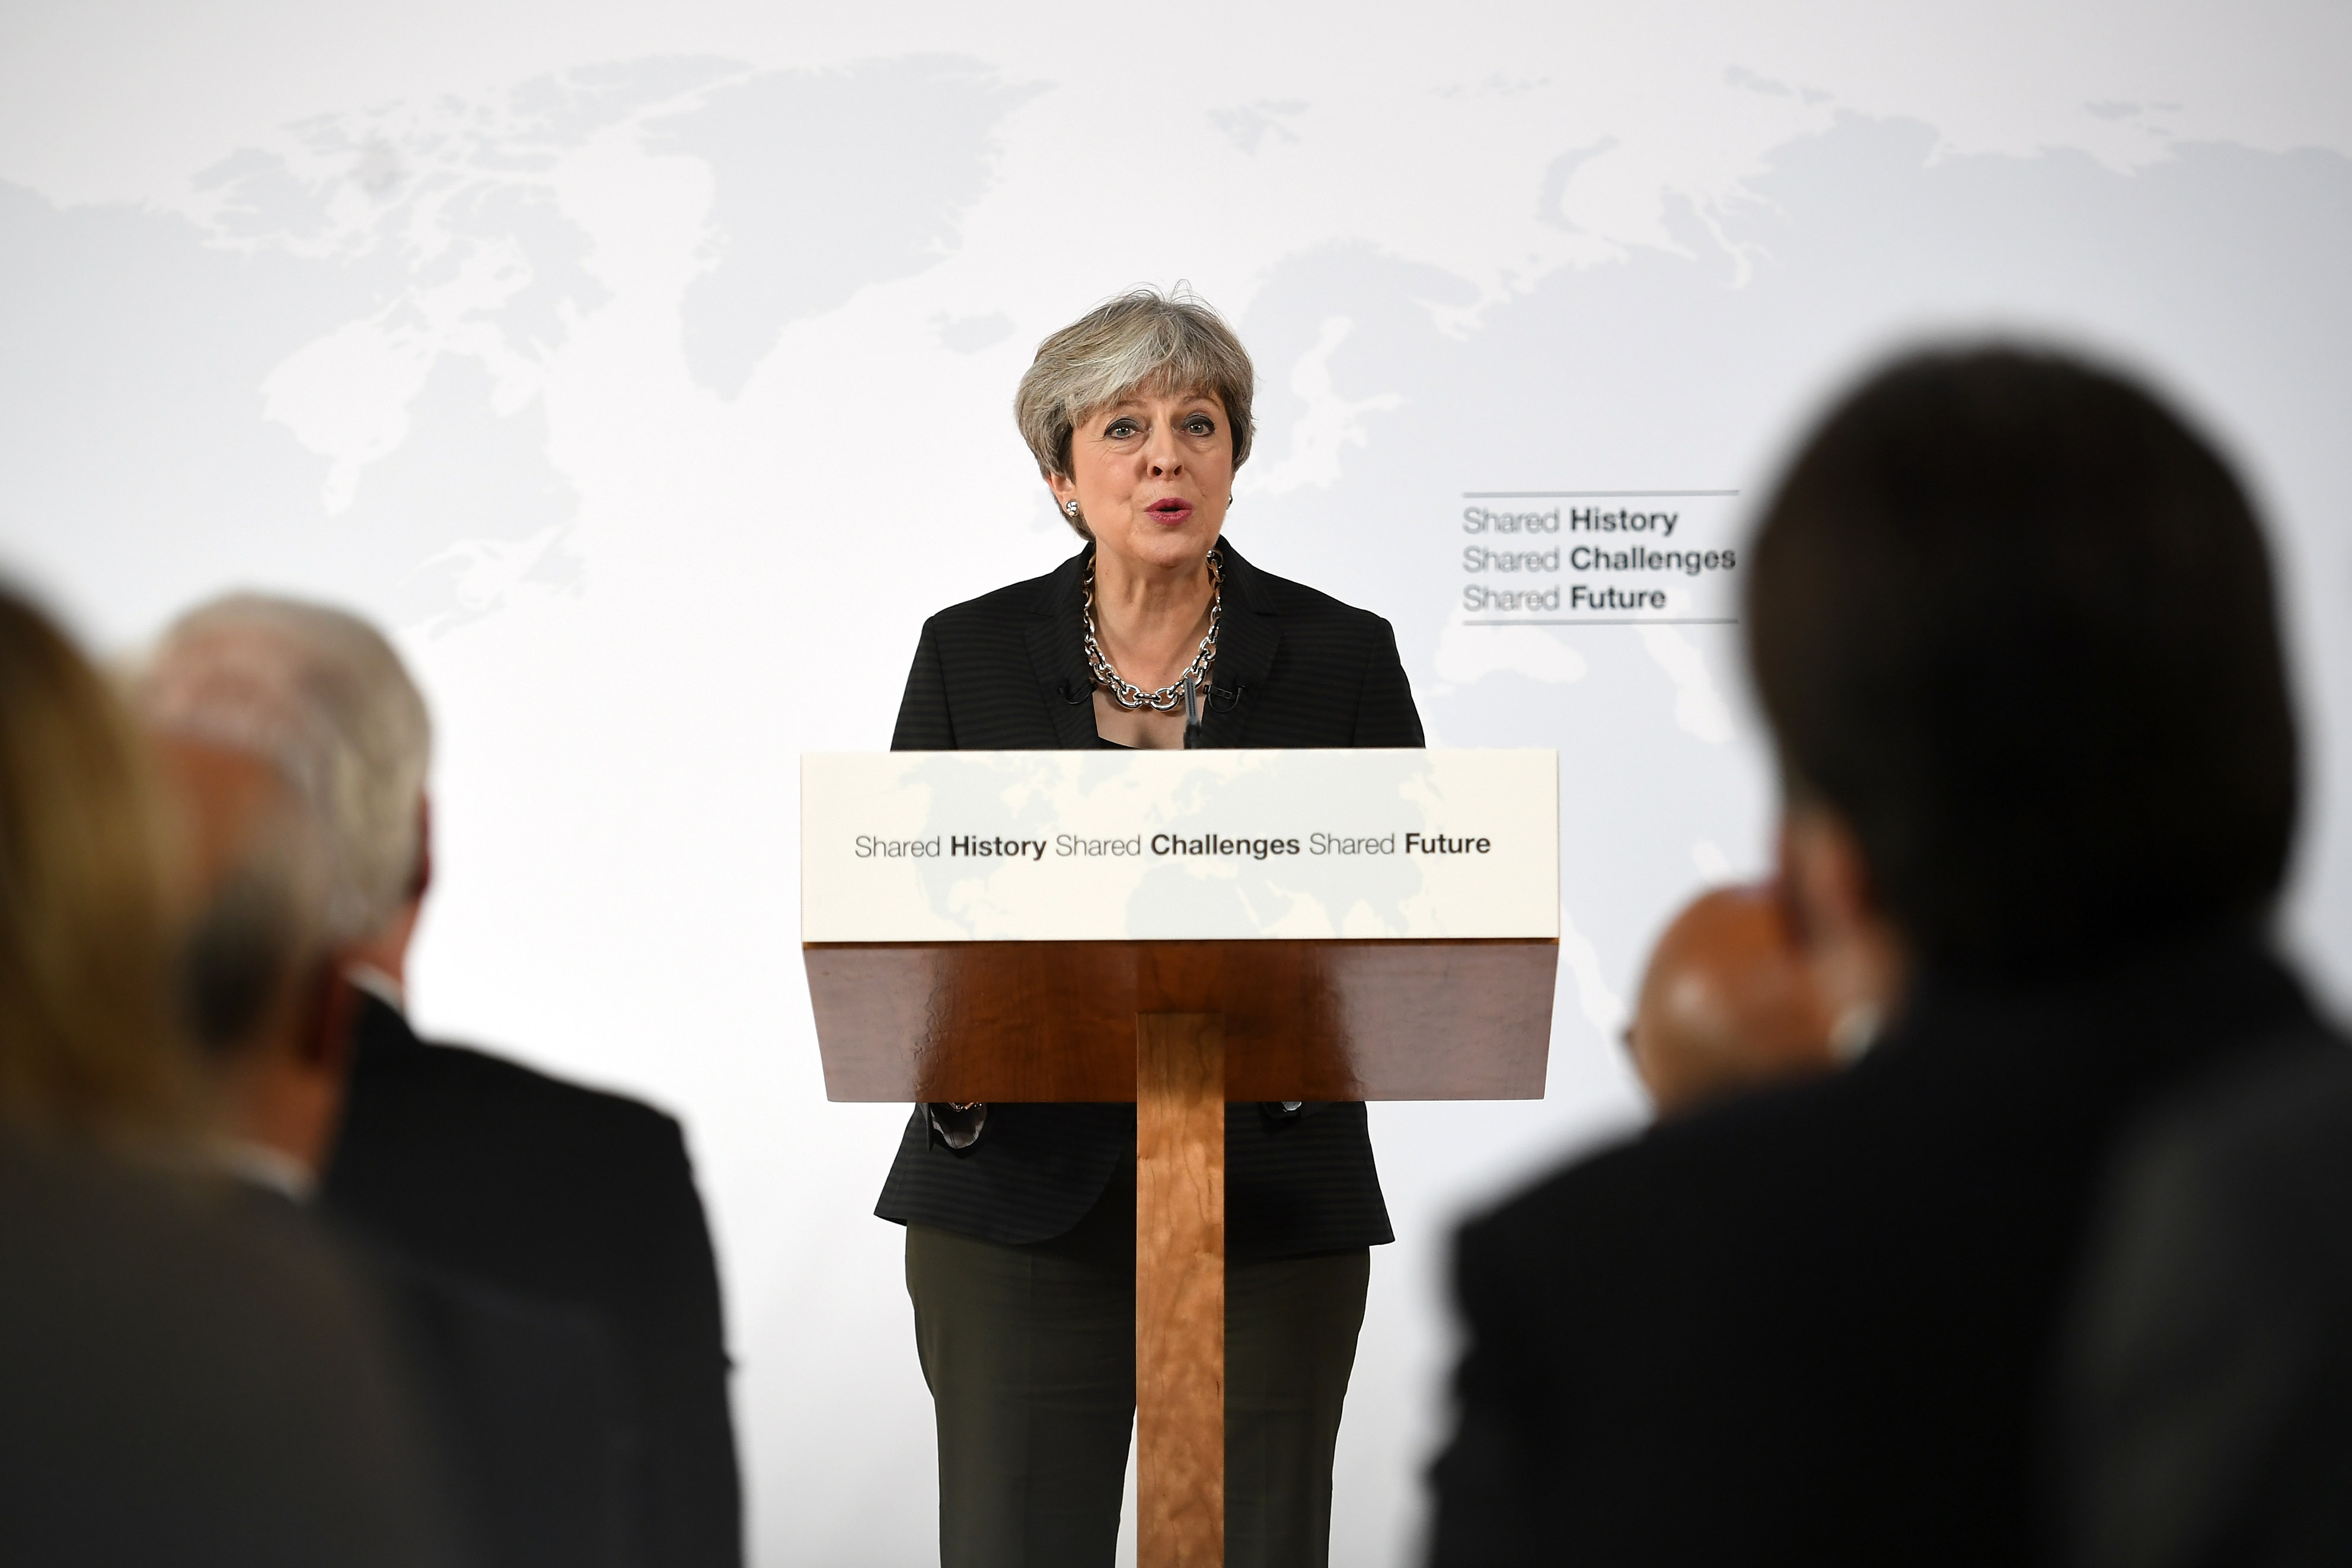 British Prime Minister Theresa May gives her landmark Brexit speech in Complesso Santa Maria Novella on September 22, 2017.